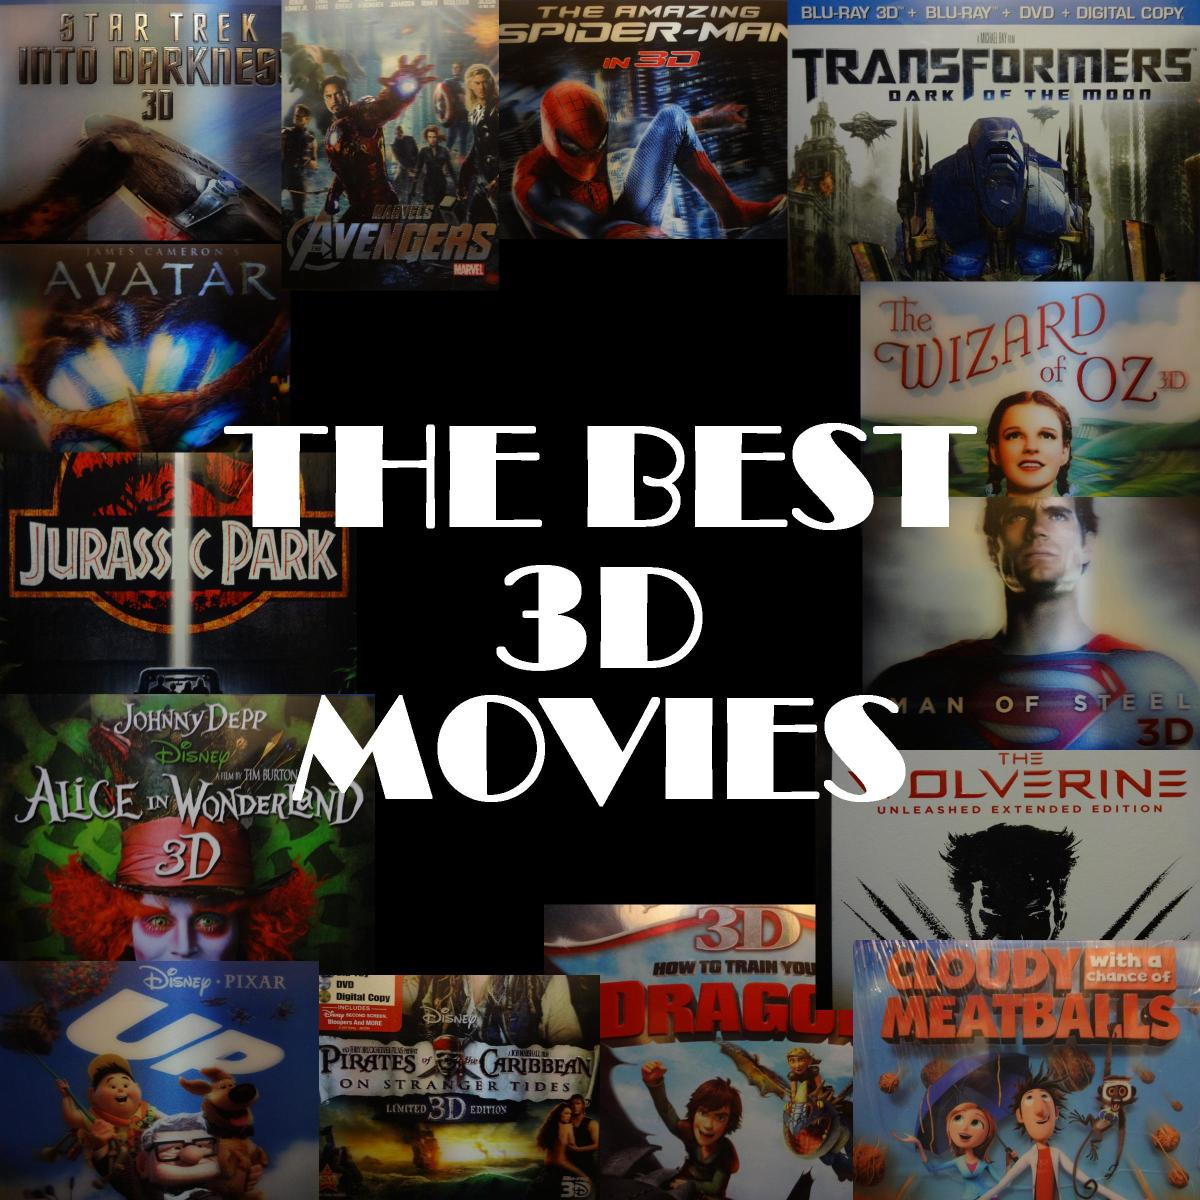 Not all 3D movies deserve to be bought. This list will help you build your collection wisely.